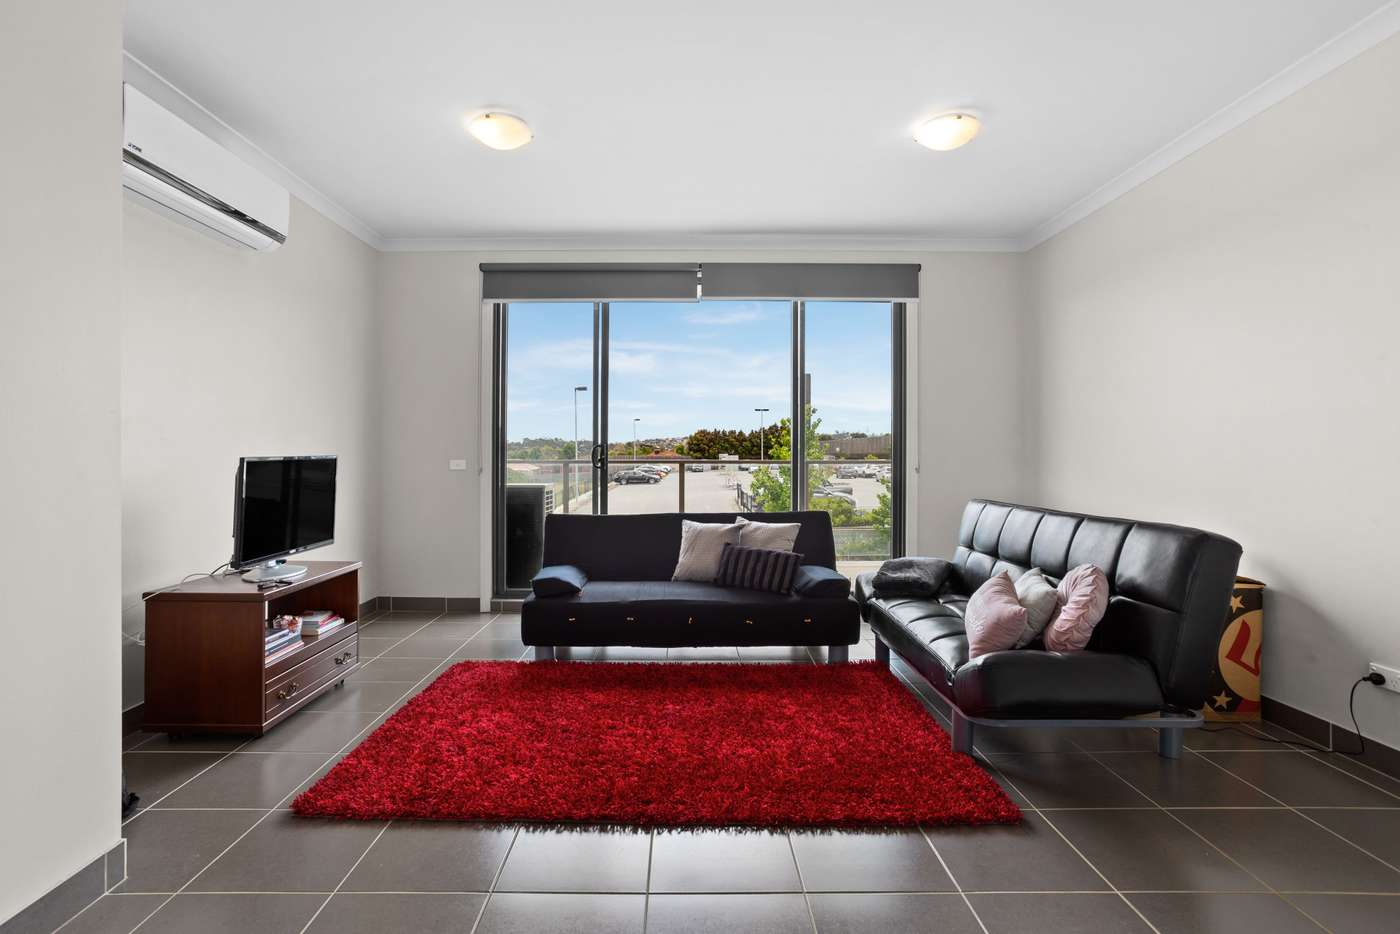 Main view of Homely townhouse listing, 107/141 Windermere Boulevard, Pakenham VIC 3810